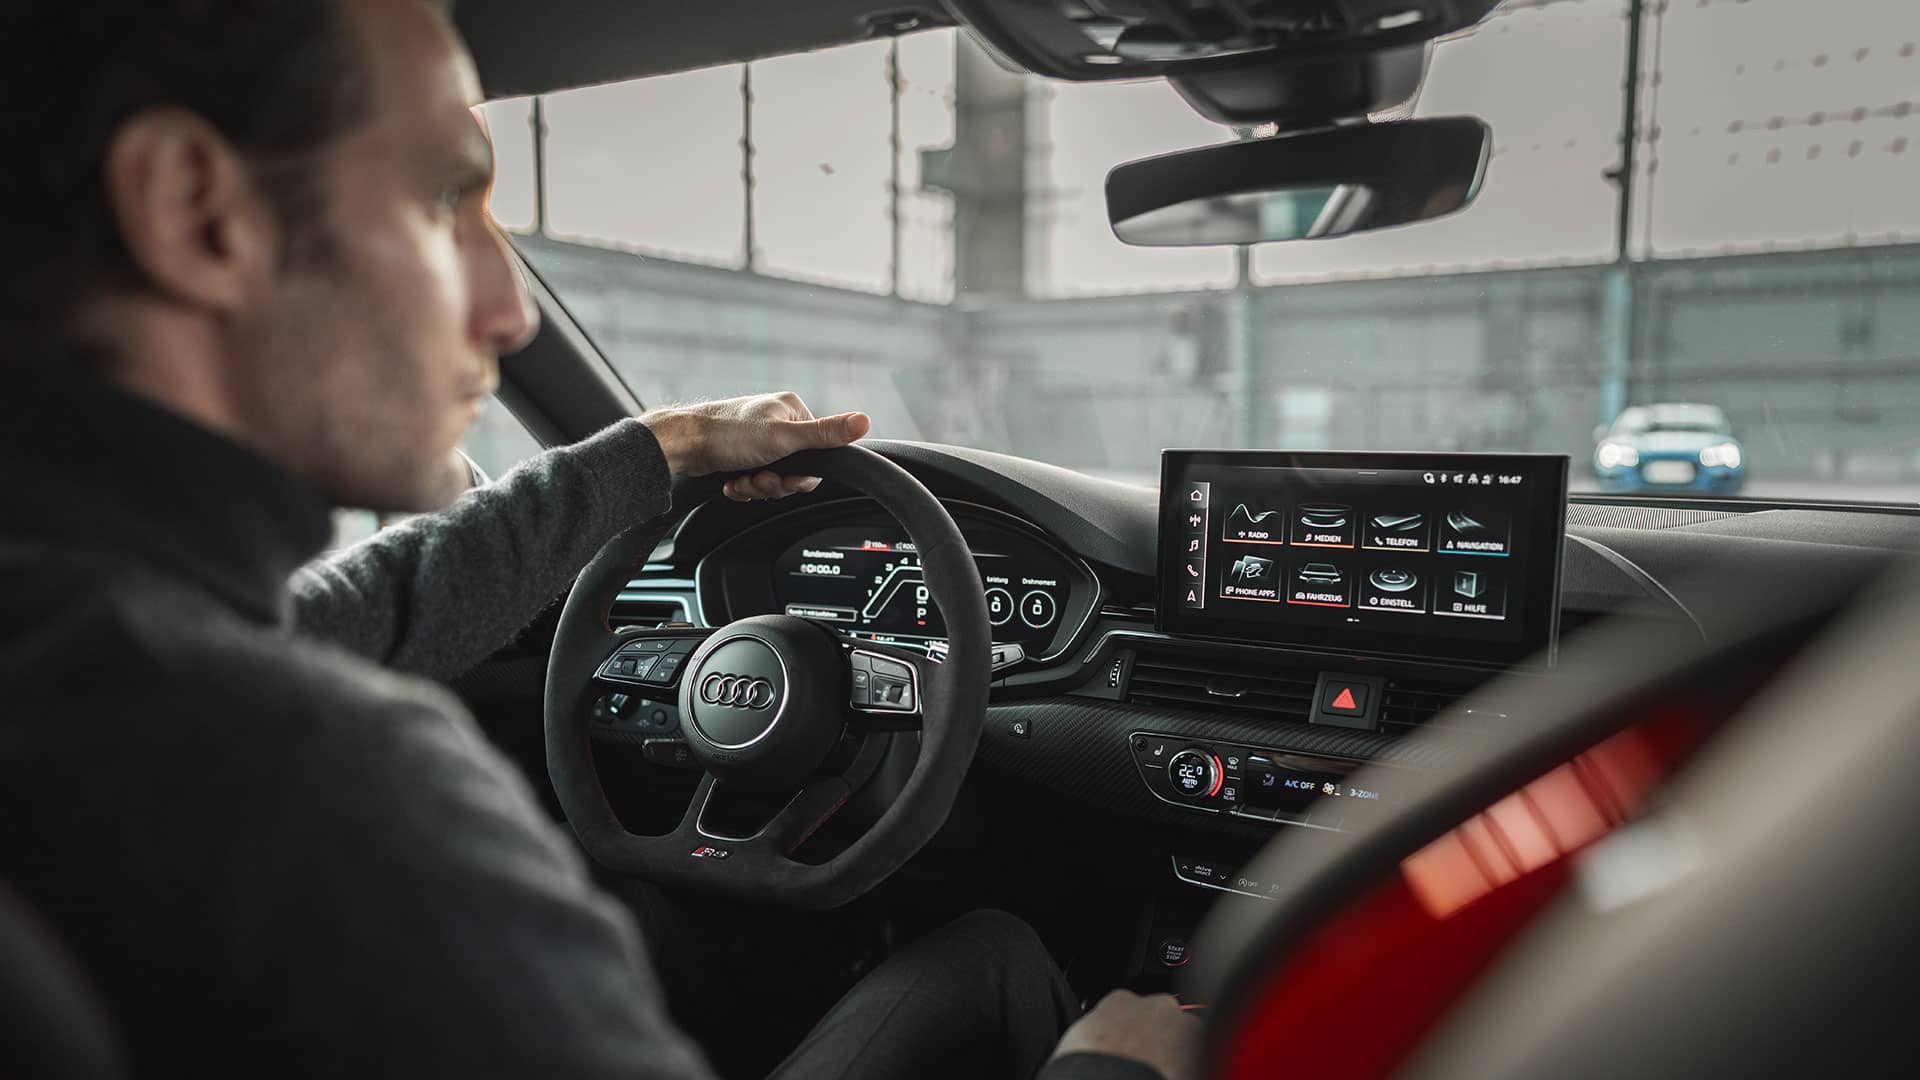 Cockpit in the Audi RS 5 Sportback